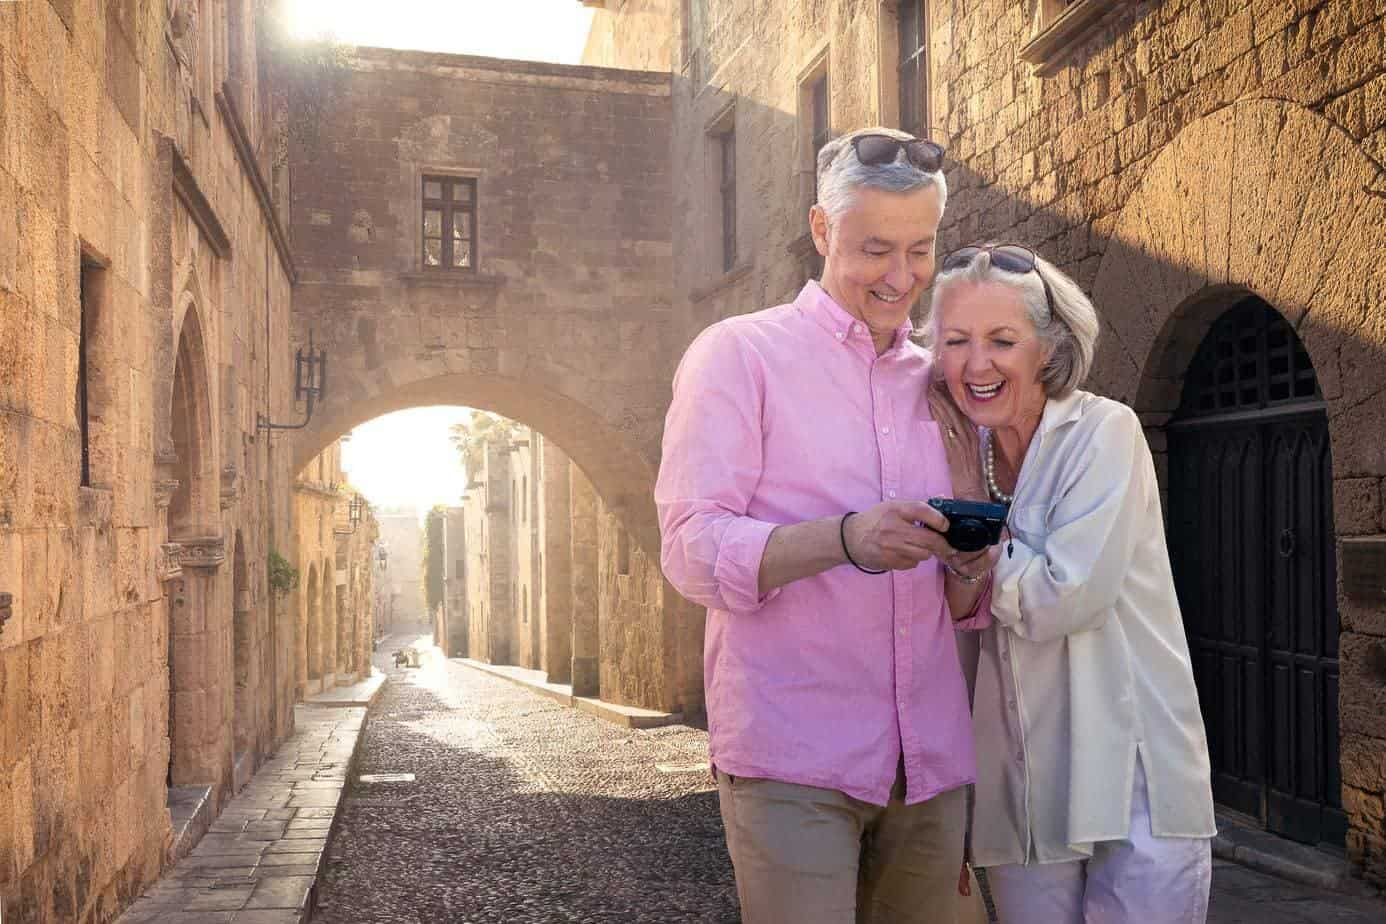 Mature-couple-sightseeing-rhodes-old-town